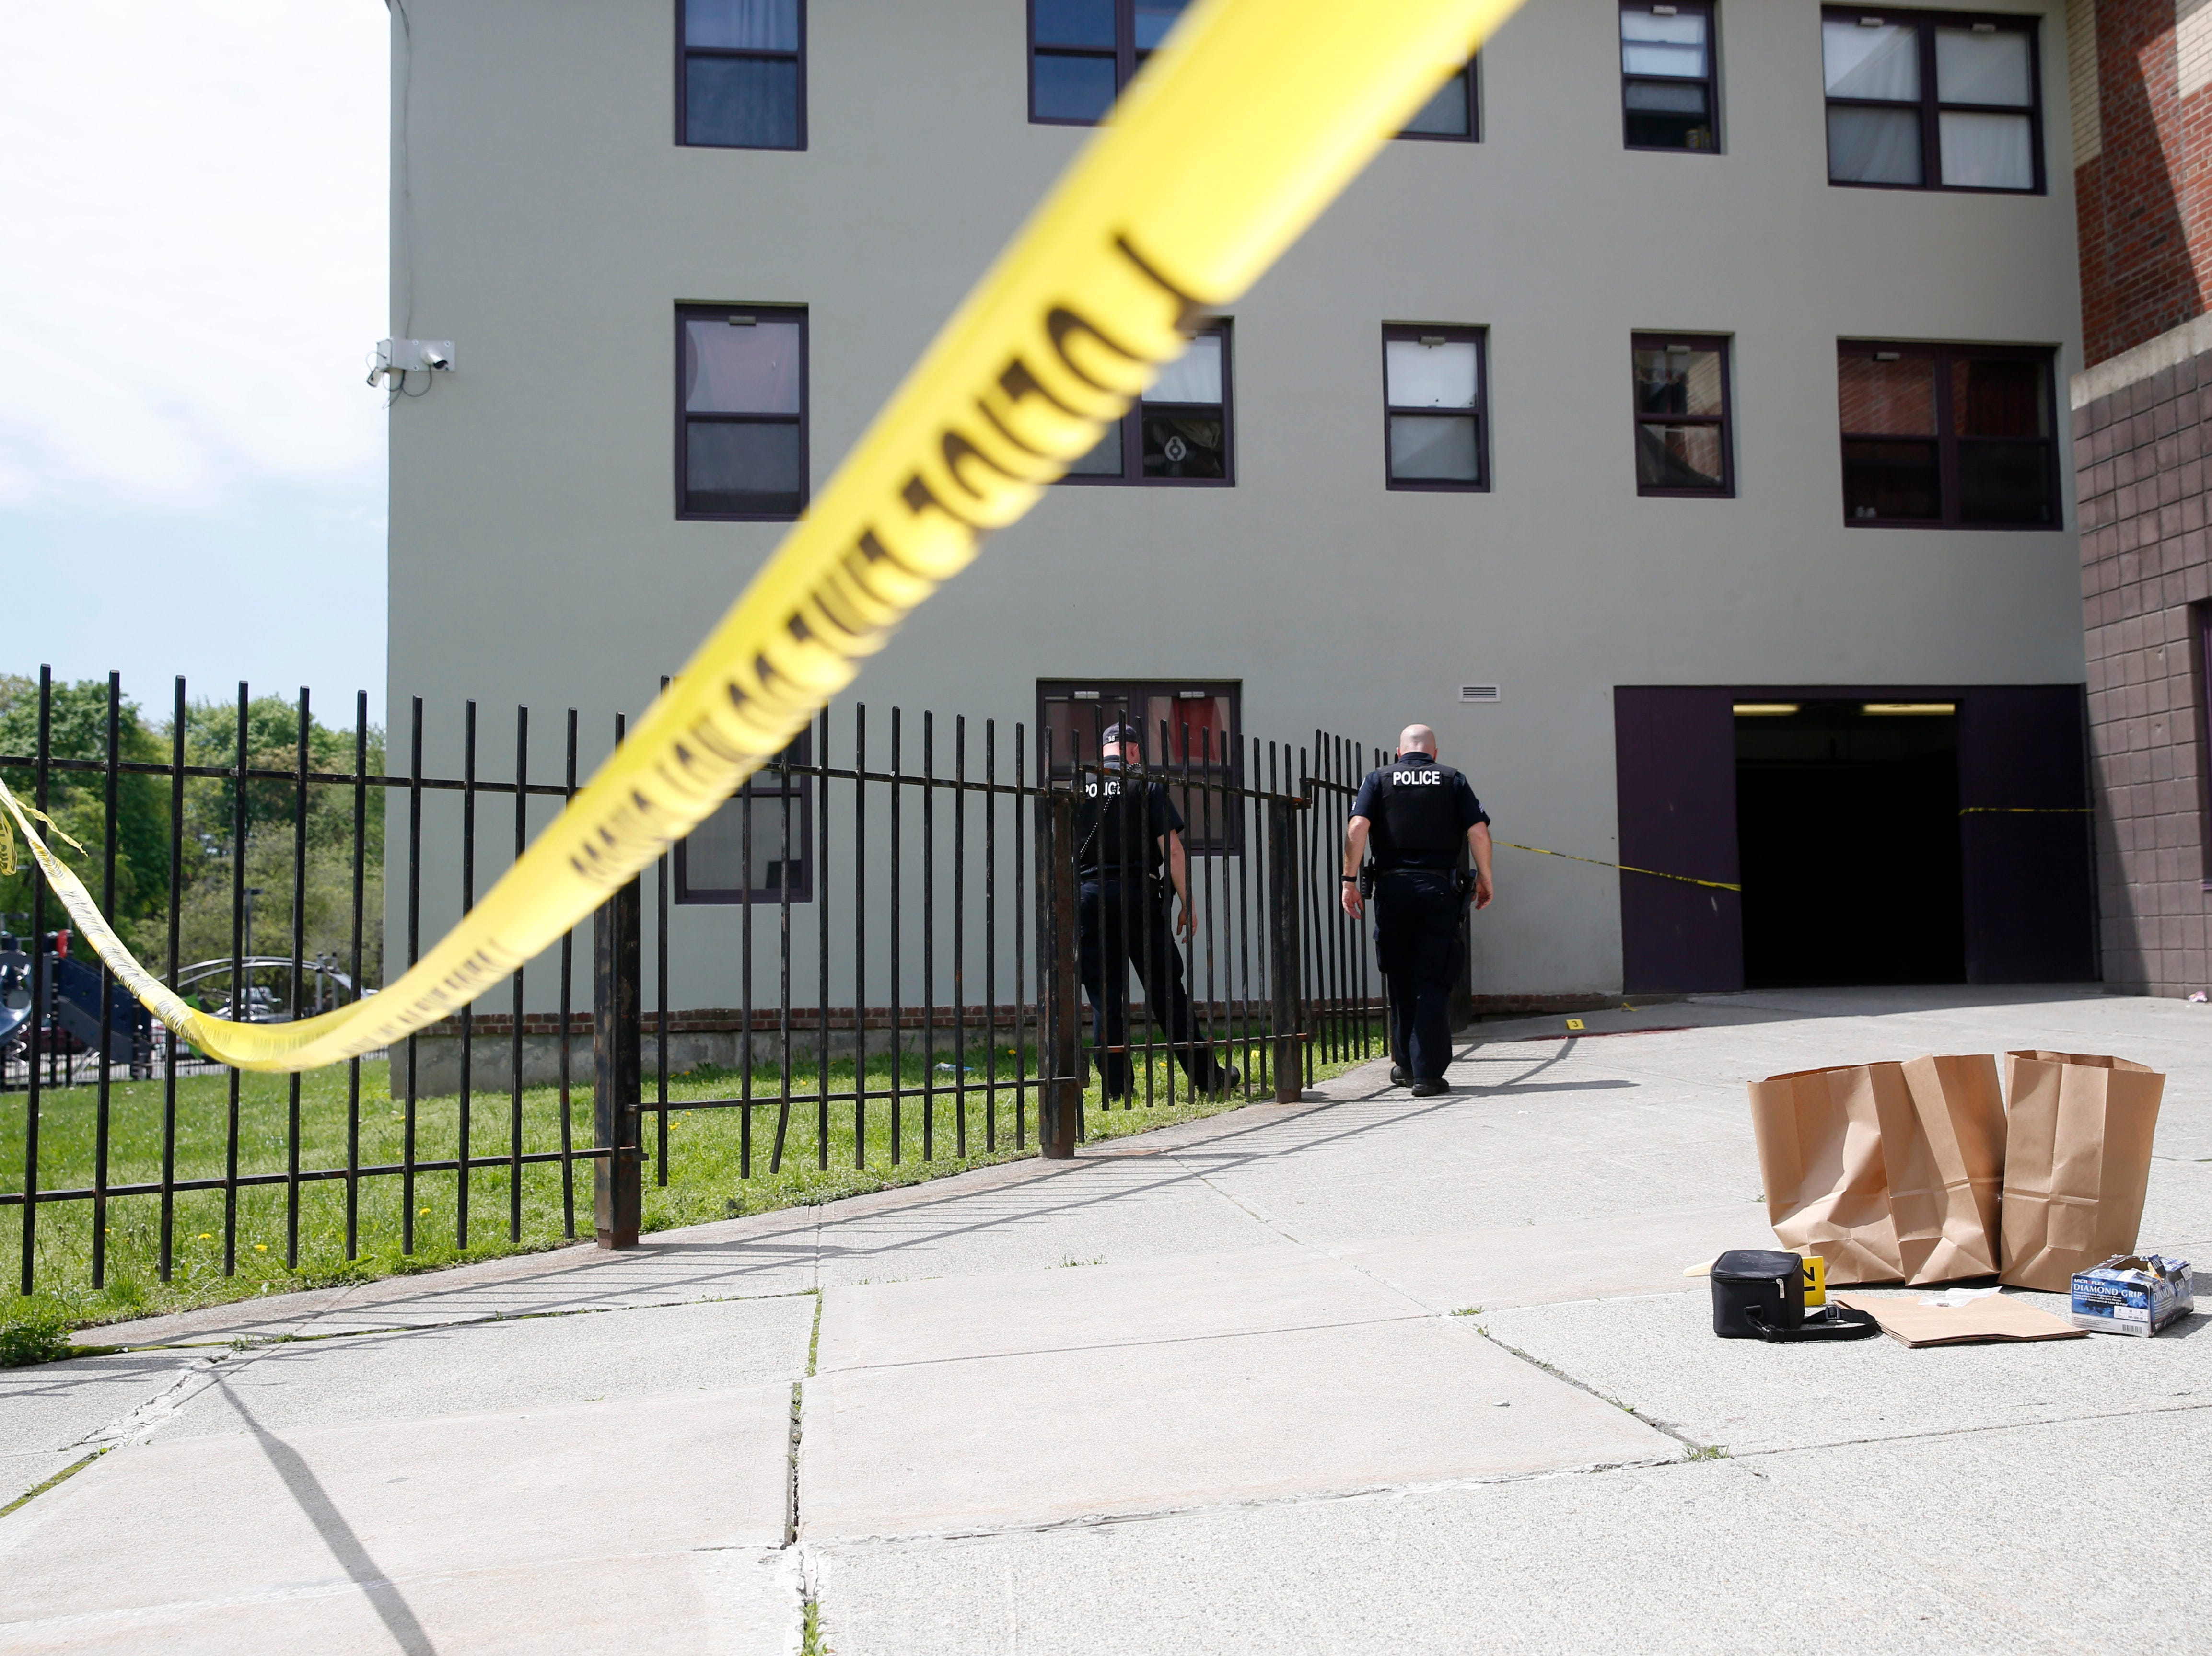 City Police investigate a shooting that occurred at the Hudson Gardens Apartments in the City of Poughkeepsie on May 7, 2019.